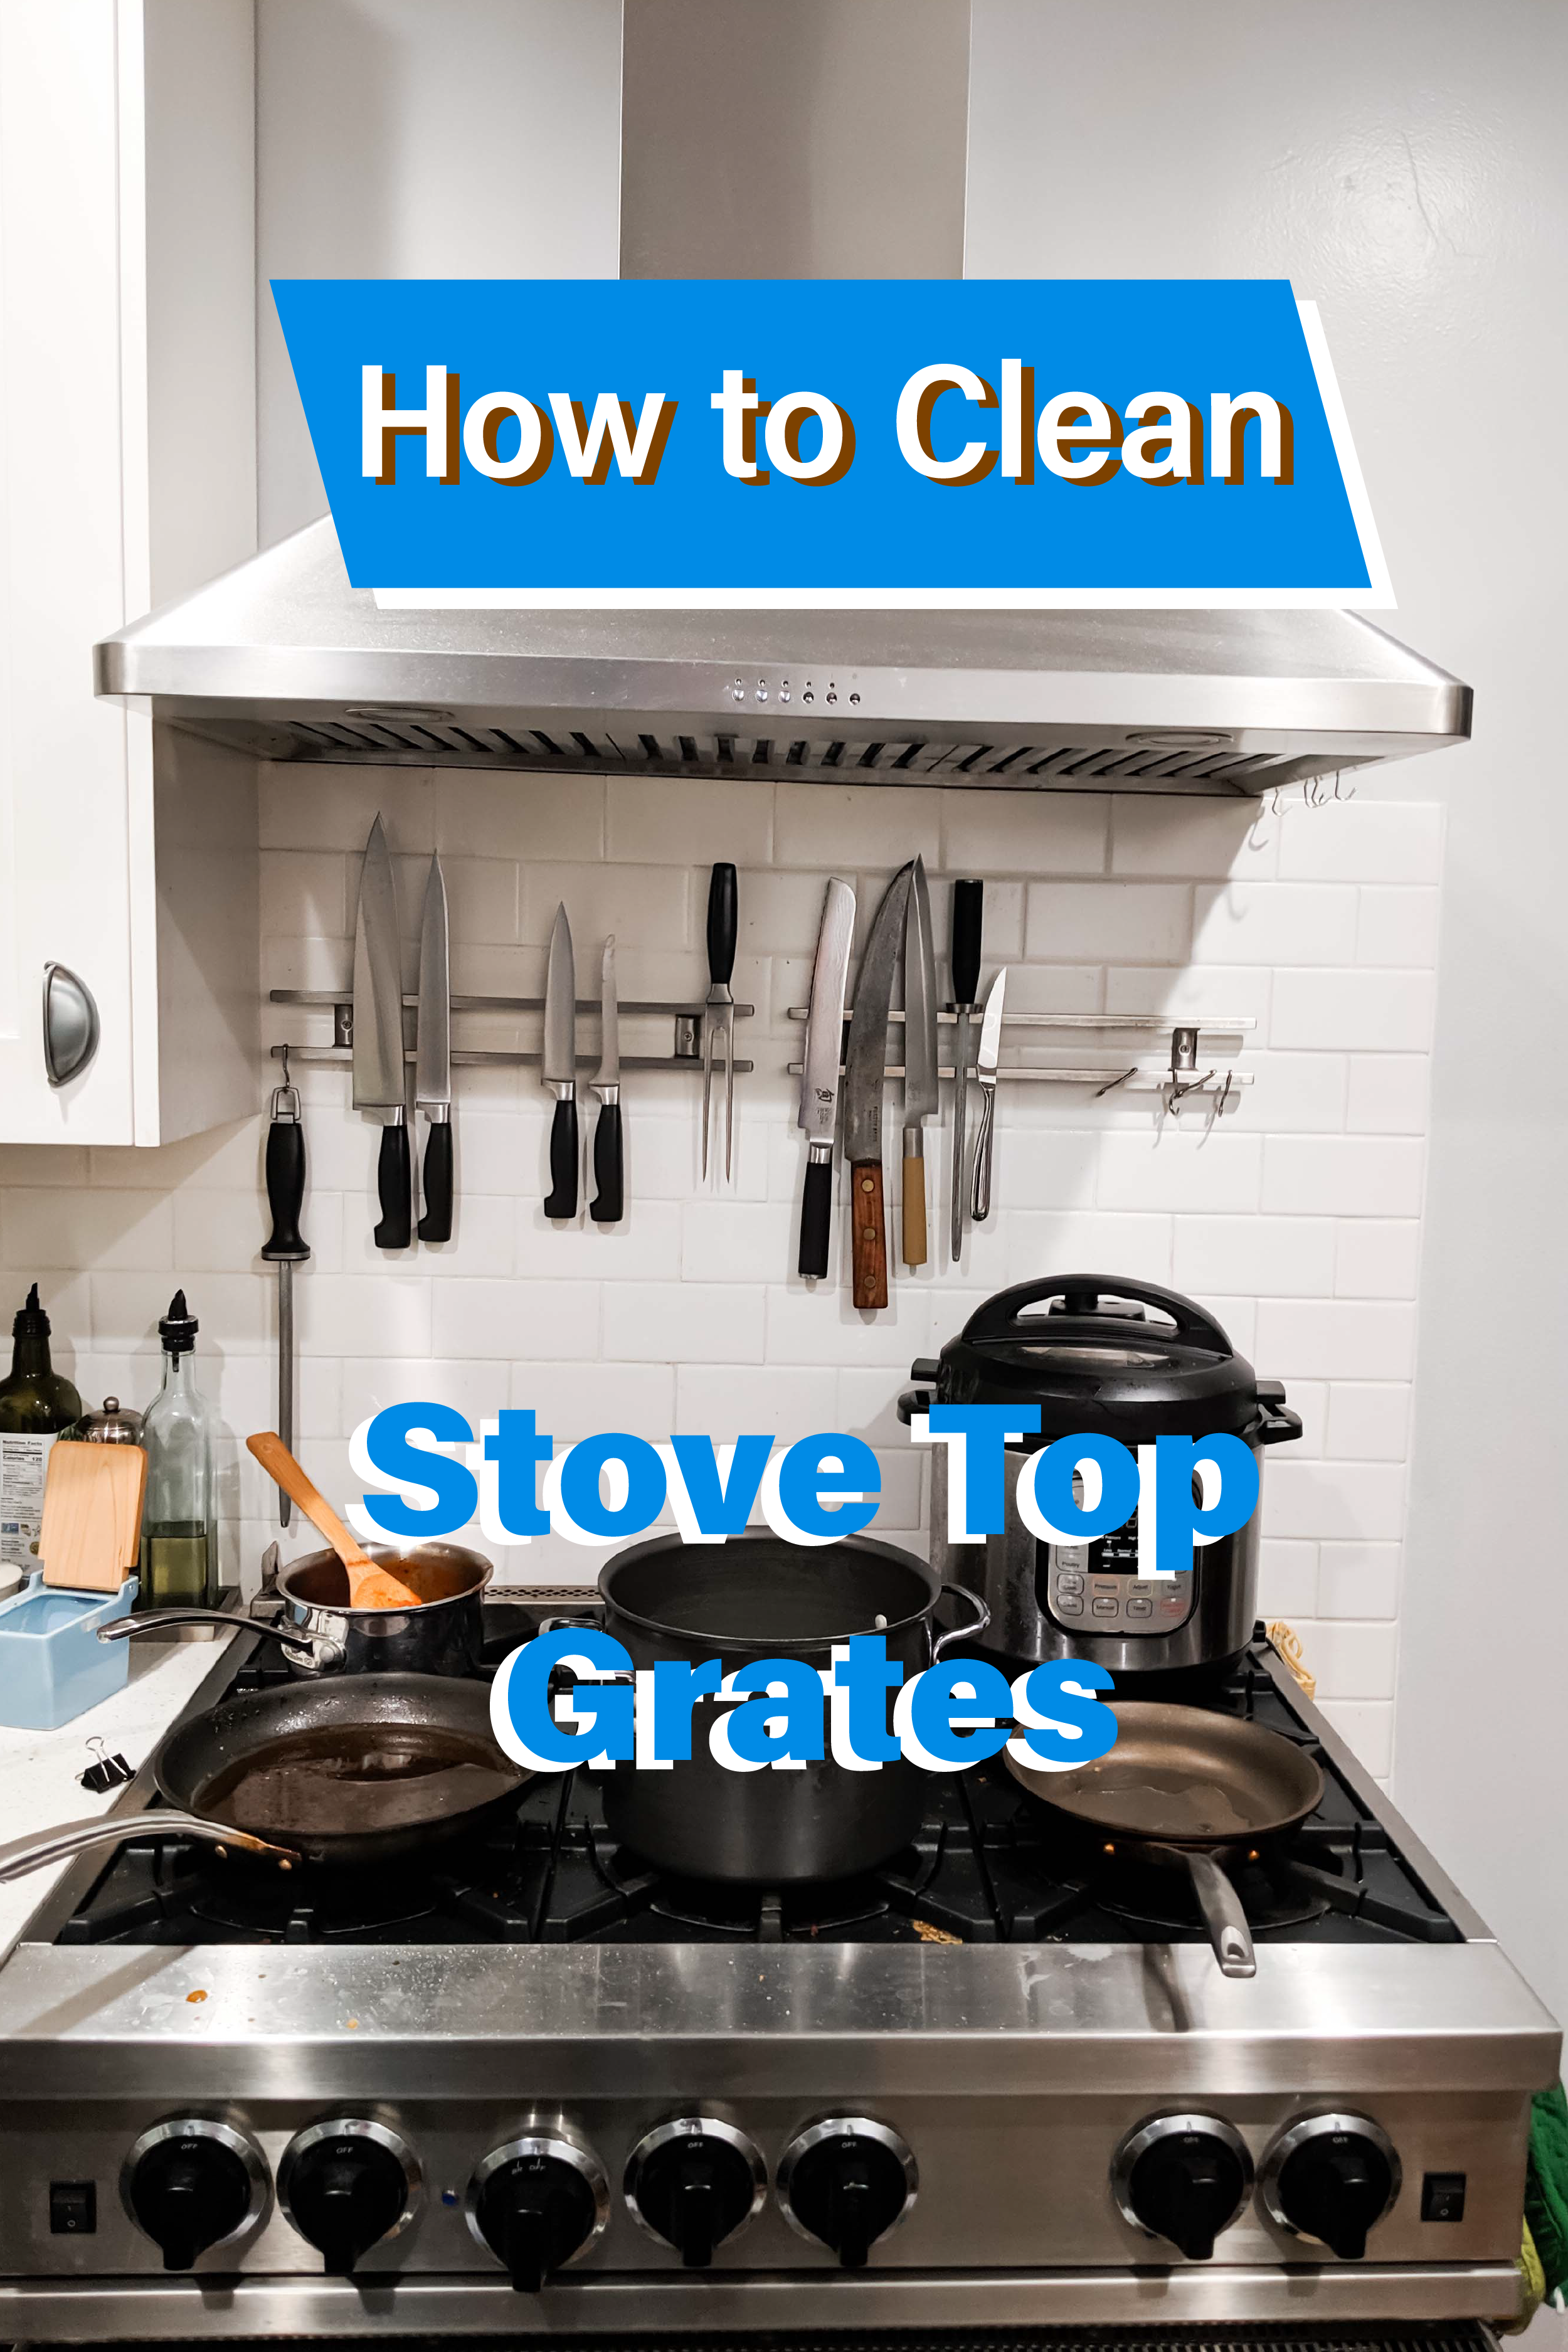 How To Clean Stove Top Grates Clean Stove Clean Stove Top Clean Stove Top Grates